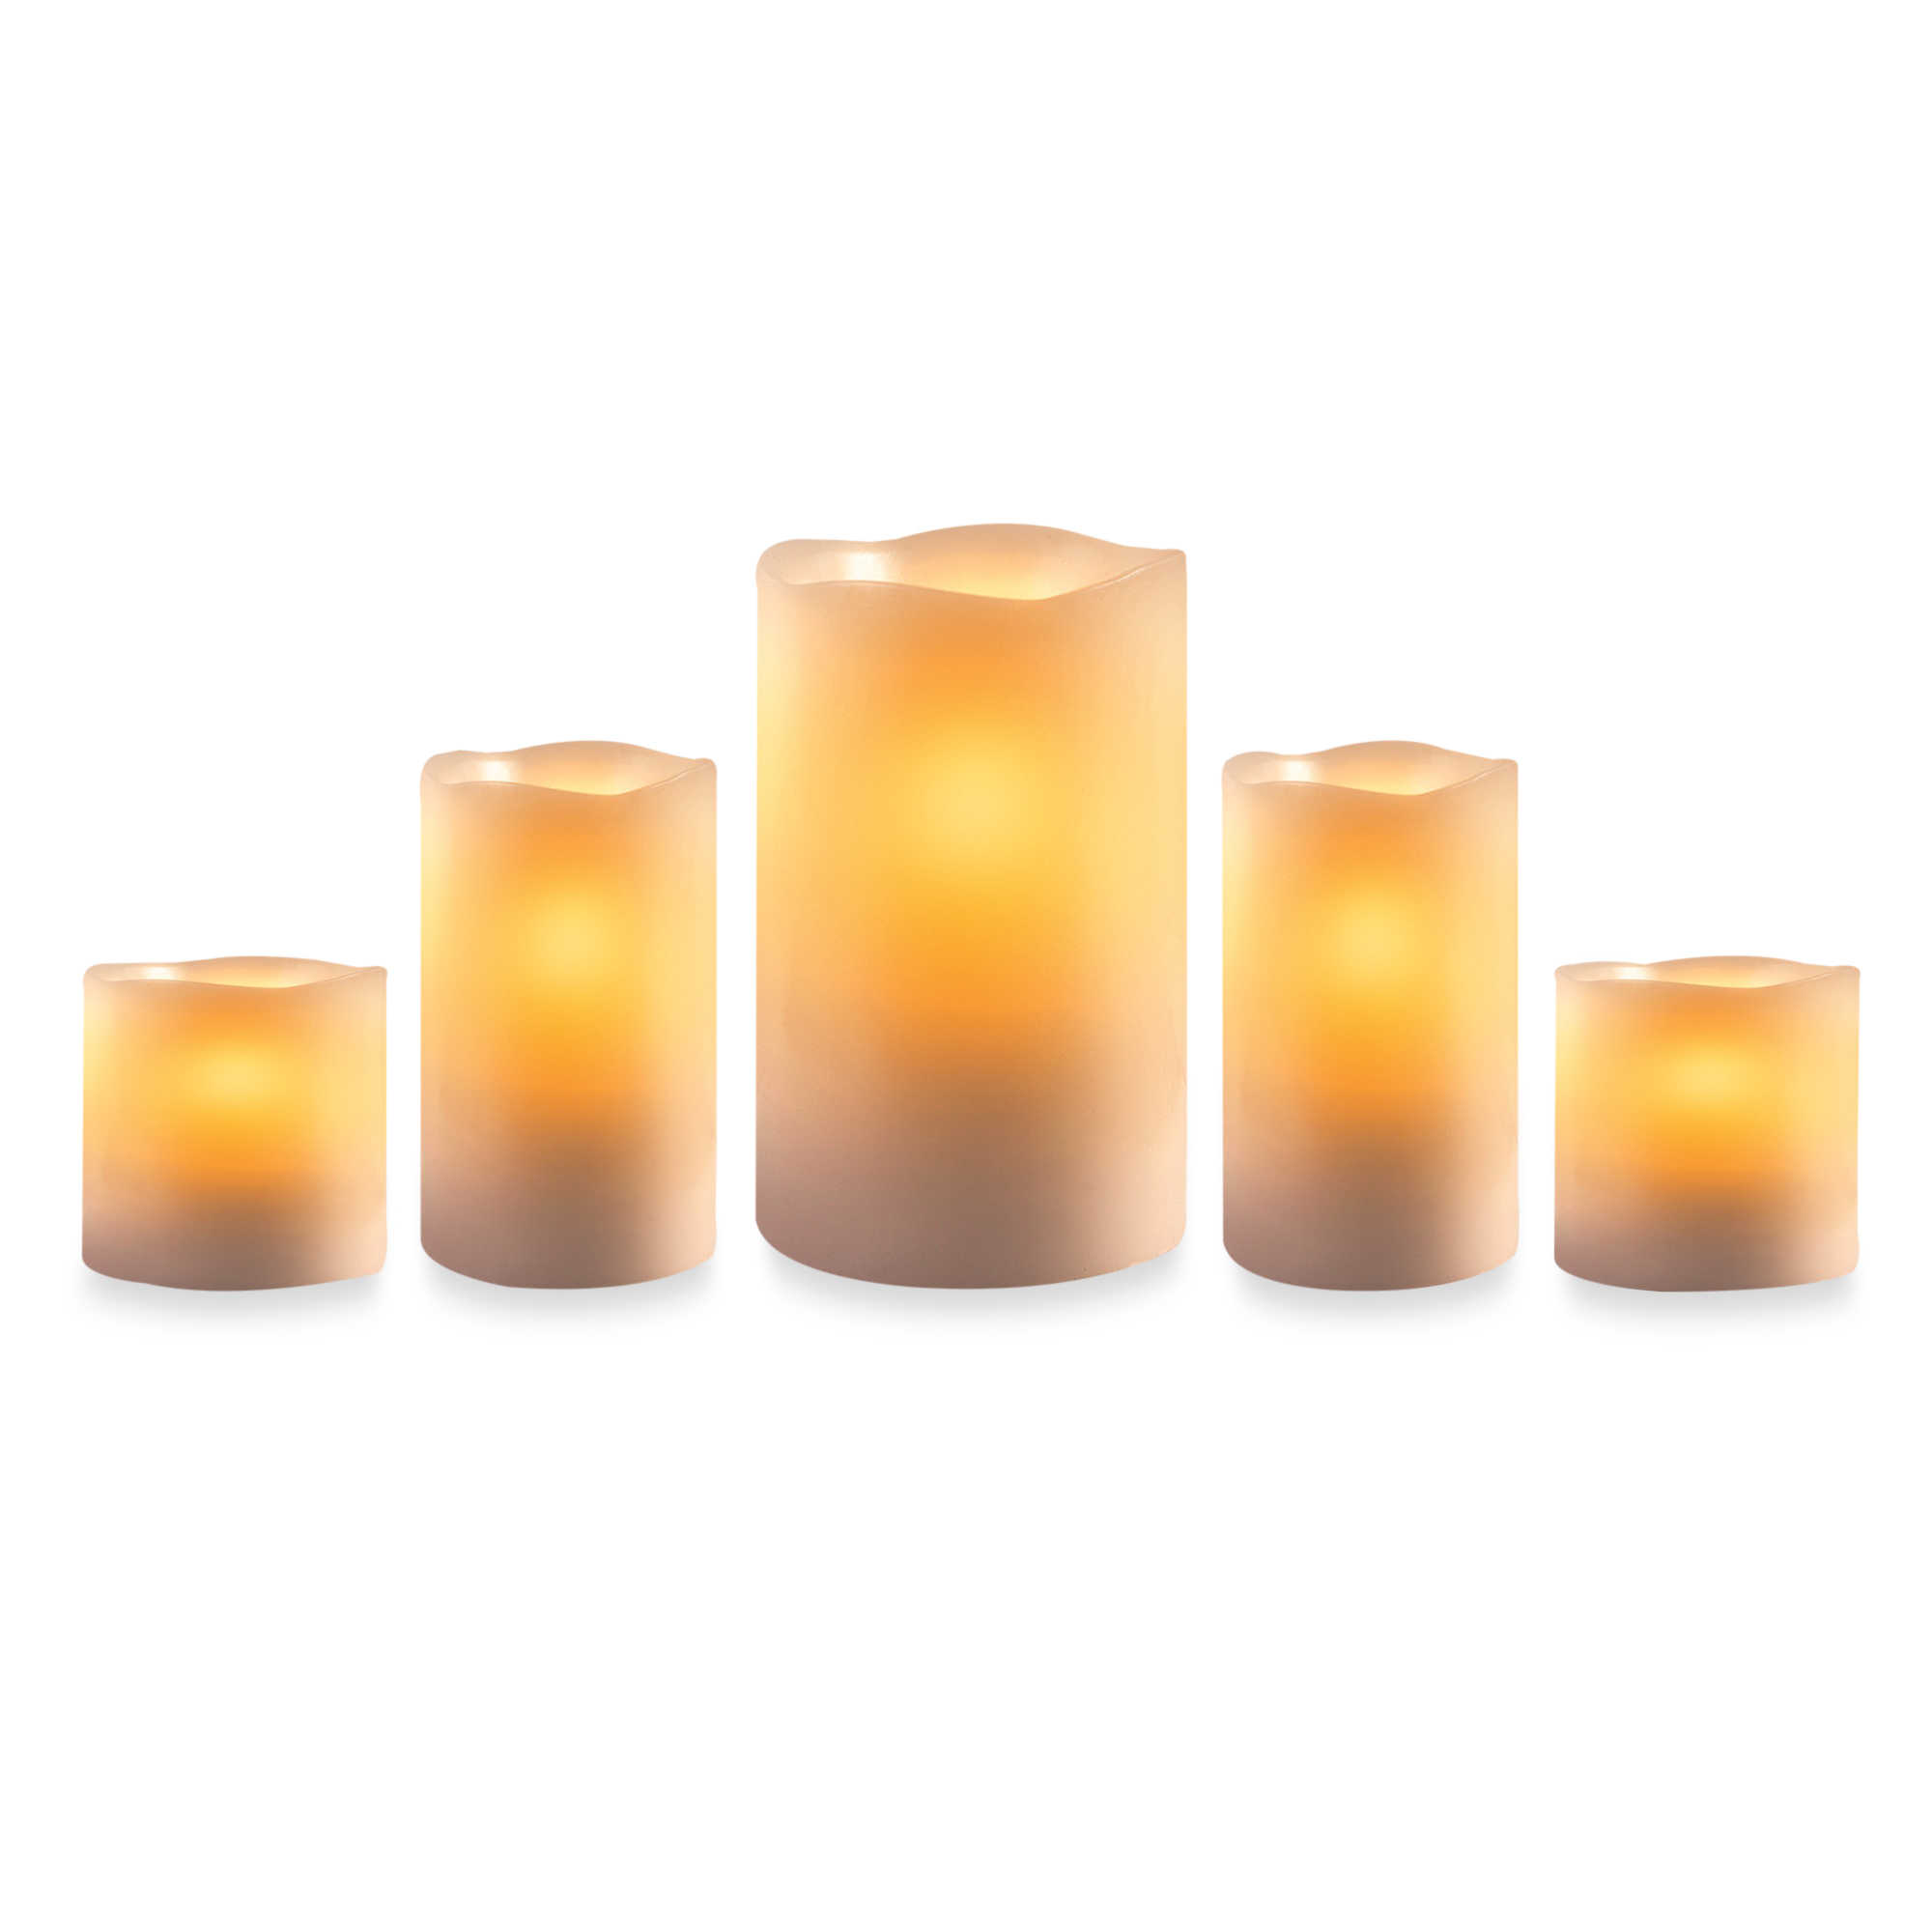 Loft Living led flameless candles with timer in Ivory for home decoration ideas